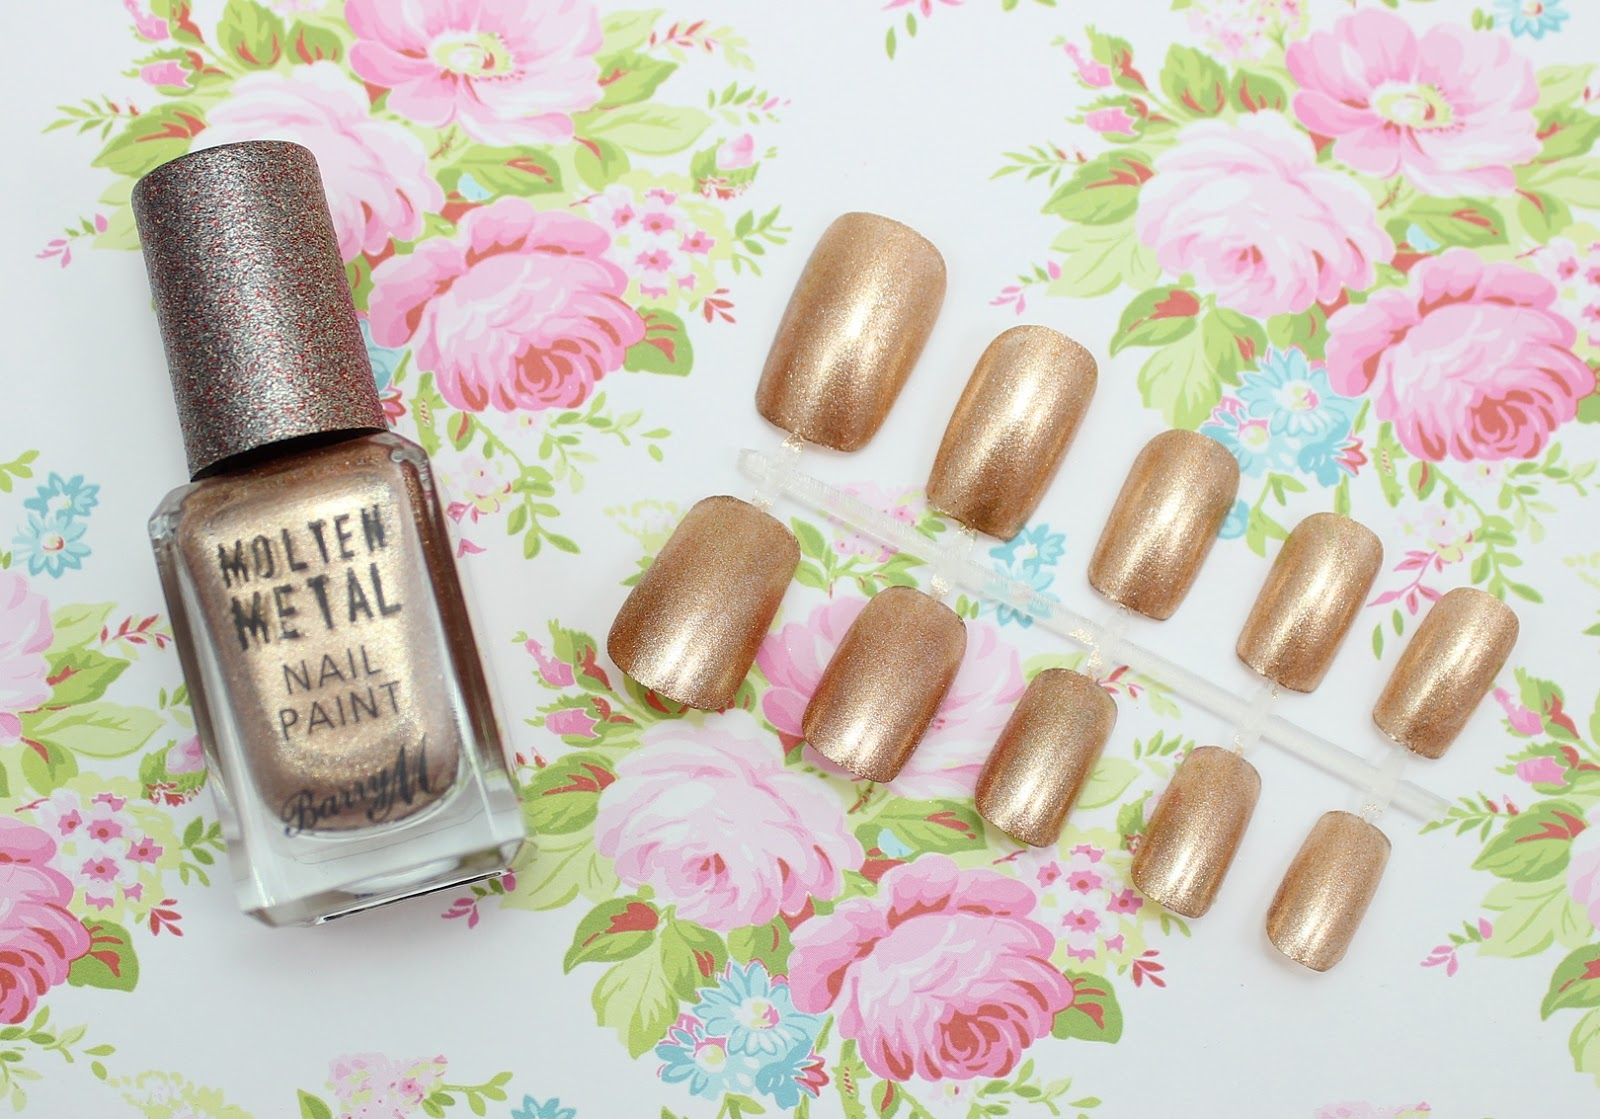 Barry M Molten Metal Nail Paint Bronze Bae review